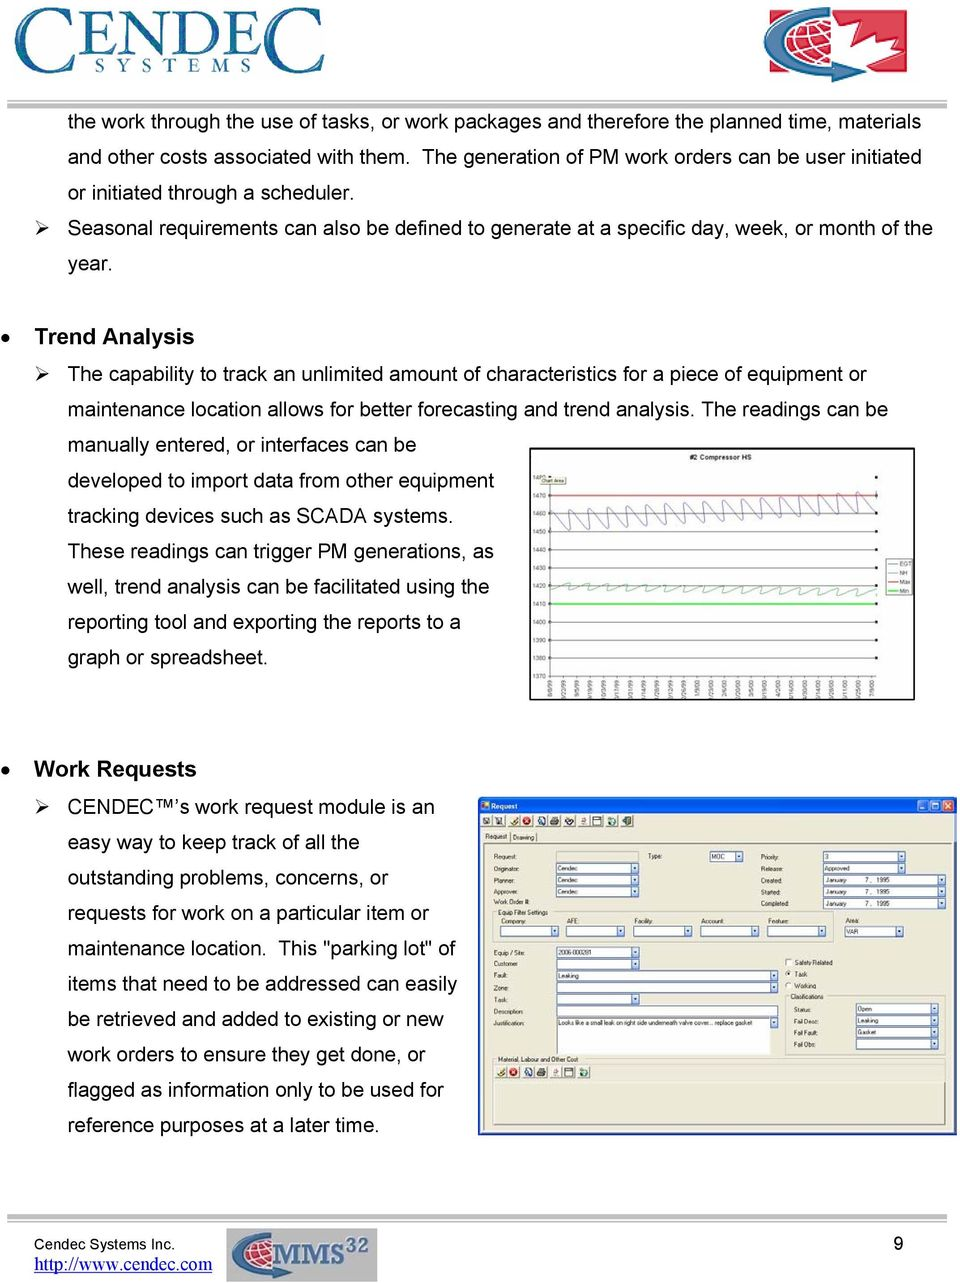 Trend Analysis The capability to track an unlimited amount of characteristics for a piece of equipment or maintenance location allows for better forecasting and trend analysis.